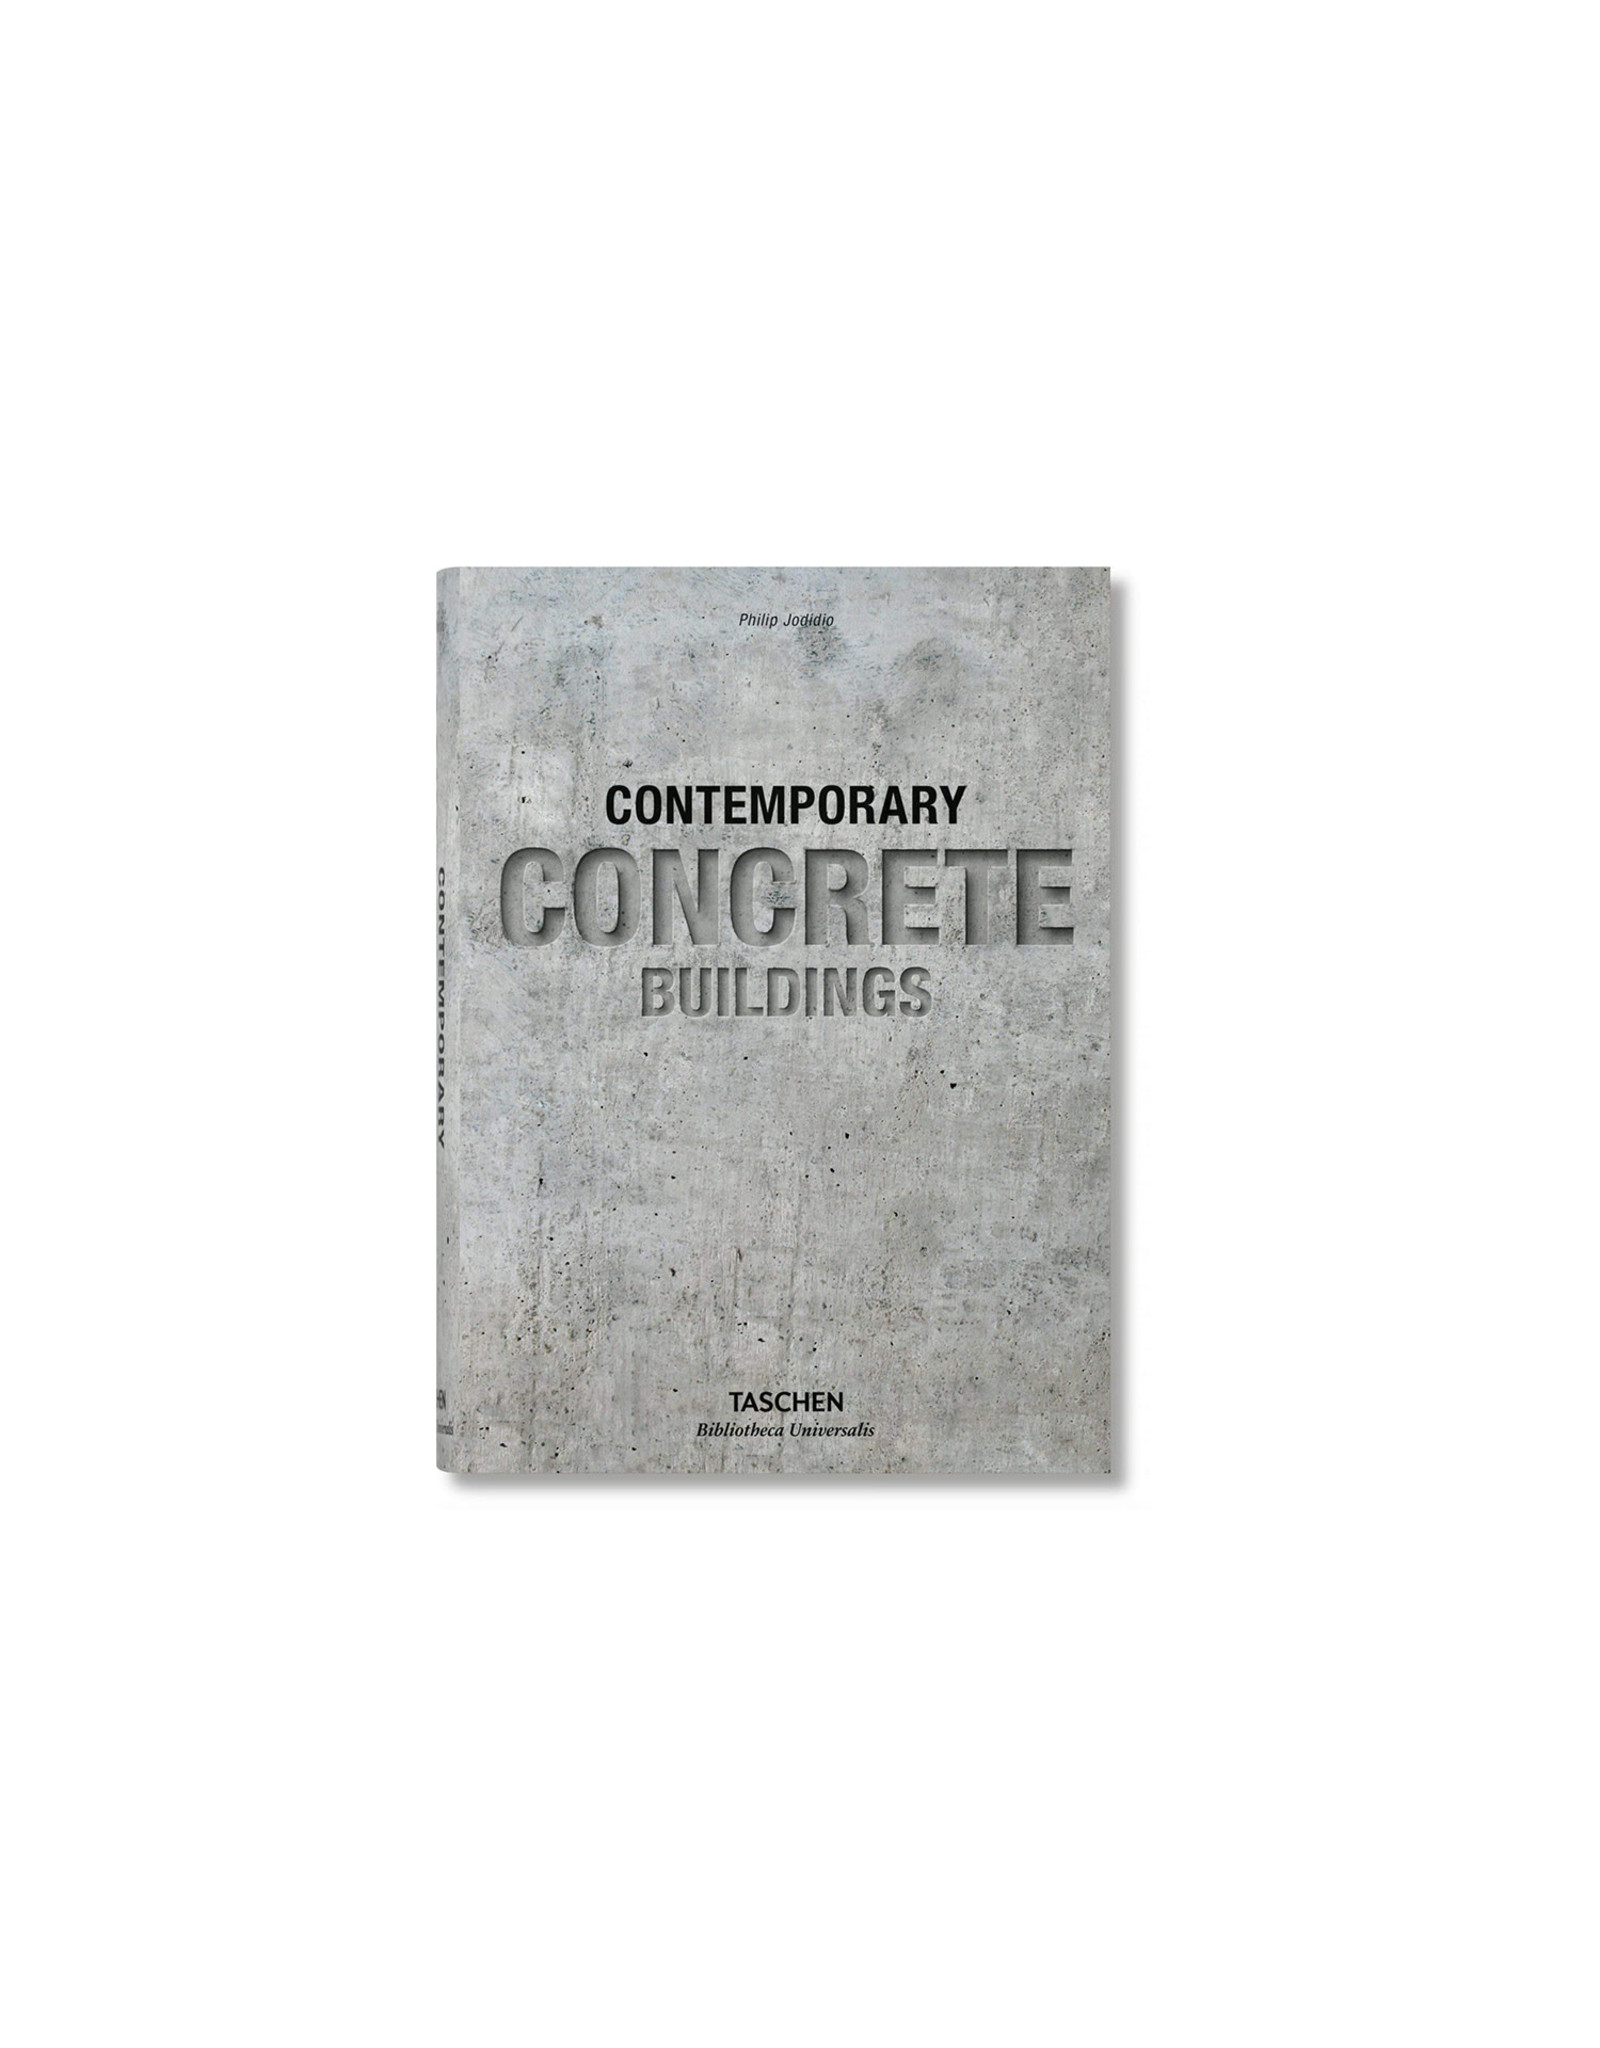 Contemporary Concrete Buildings, Small Edition